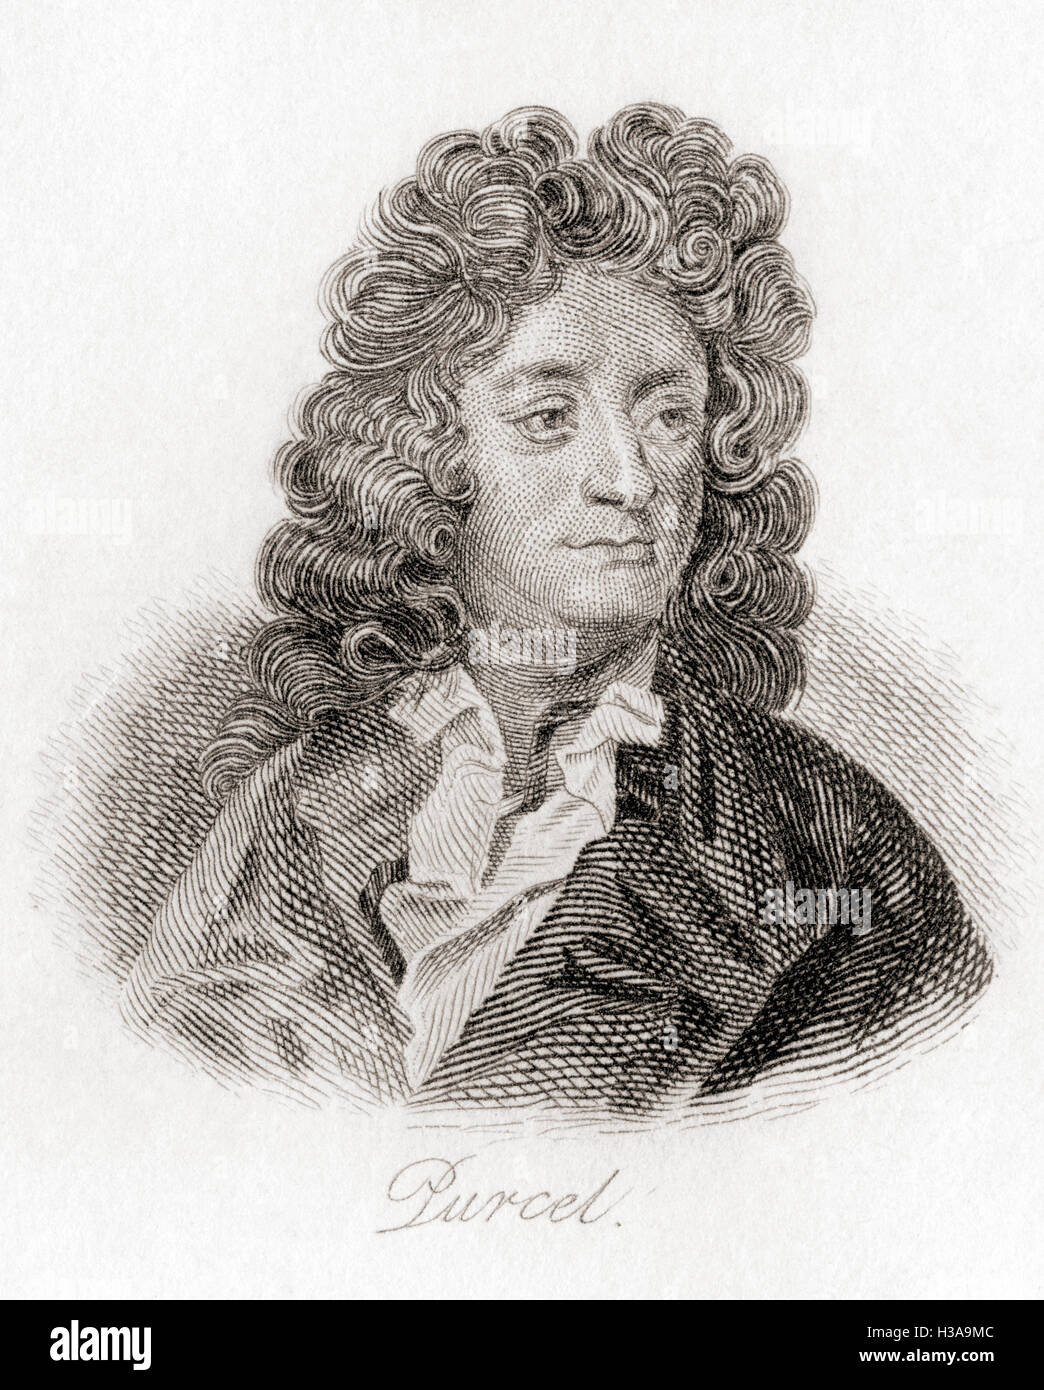 an analysis of sleep adam sleep by henry purcell An analysis of sleep adam sleep by henry purcell pages 1 words 275 view full essay more essays like this: the baroque era, sleep adam sleep, henry purcell.